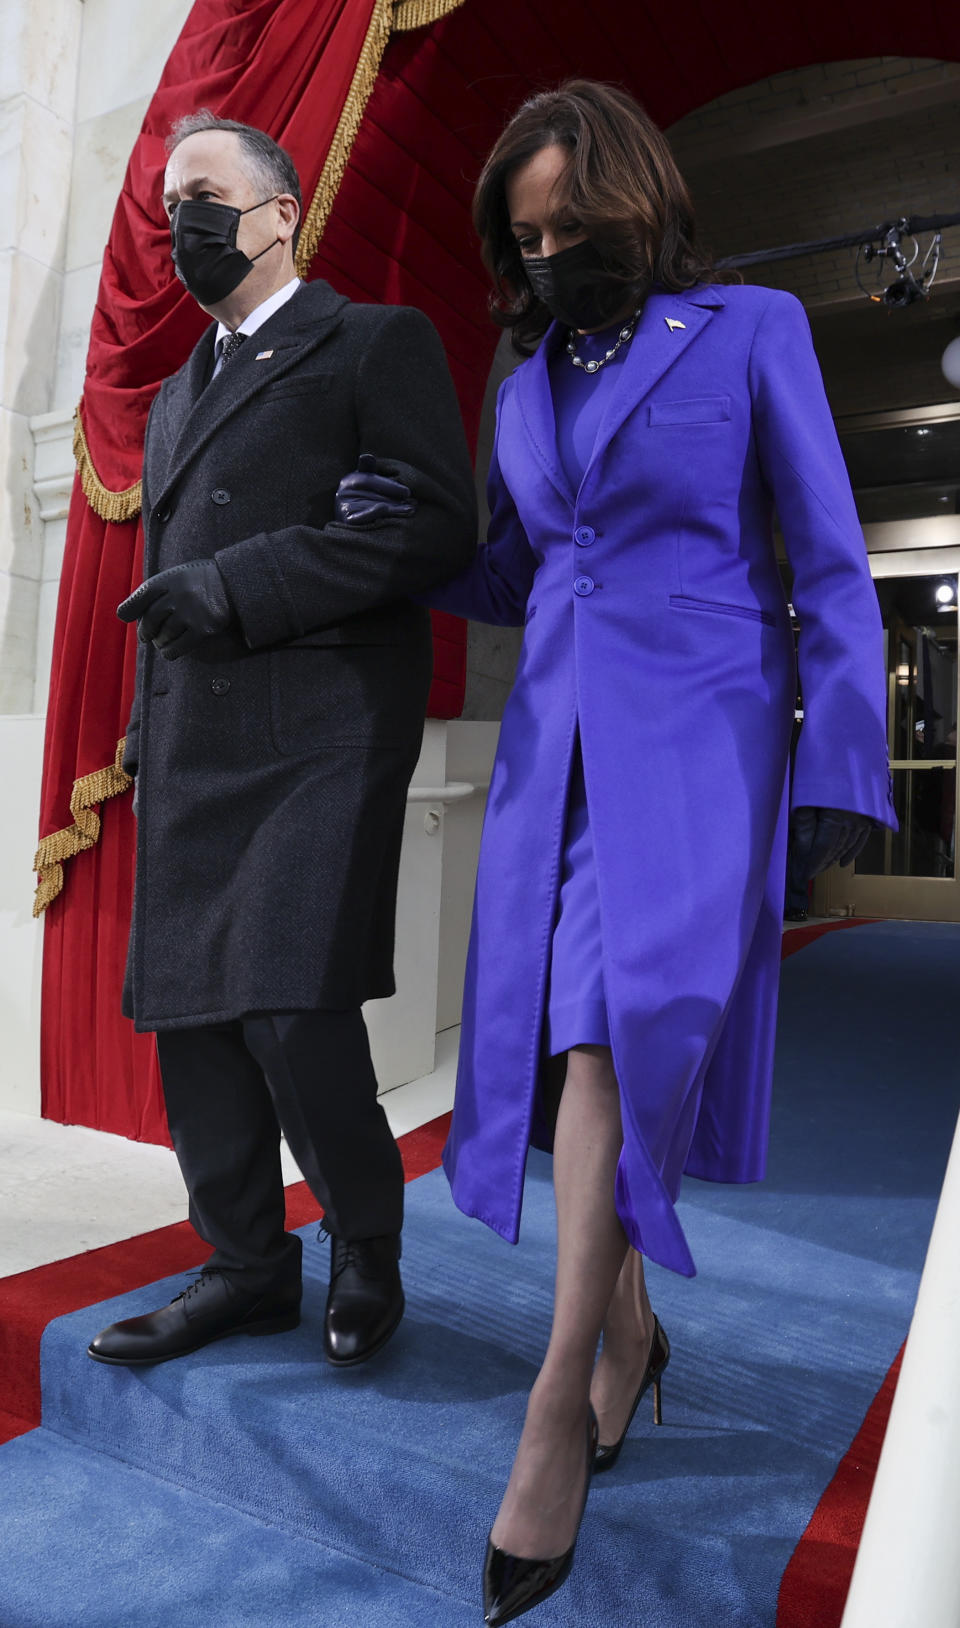 US Vice President-elect Kamala Harris and her spouse Doug Emhoff arrive for the inauguration. (Photo: Jonathan Ernst/APF via Getty Images)